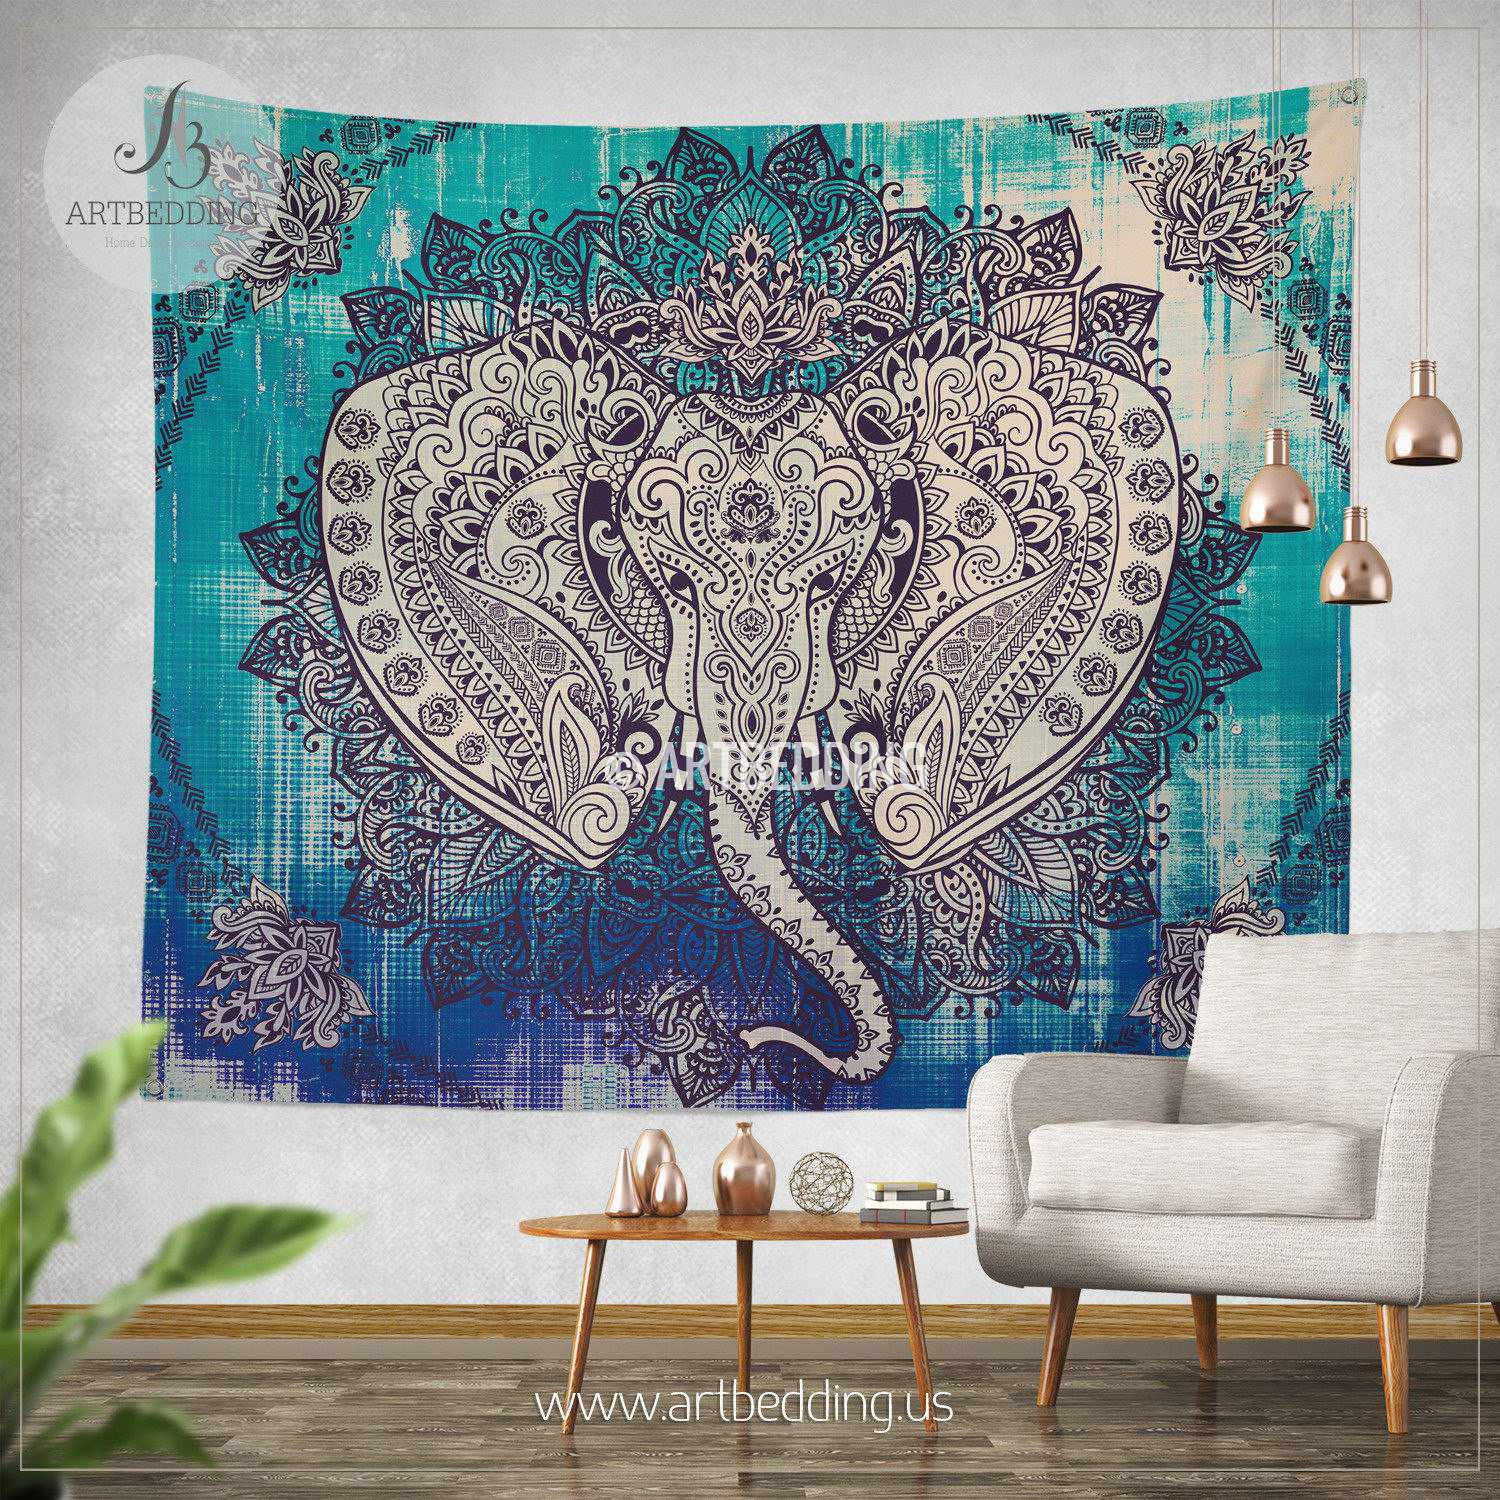 Tapestry Wall Hanging boho elephant tapestry, ganesh elephant wall hanging, indie shabby